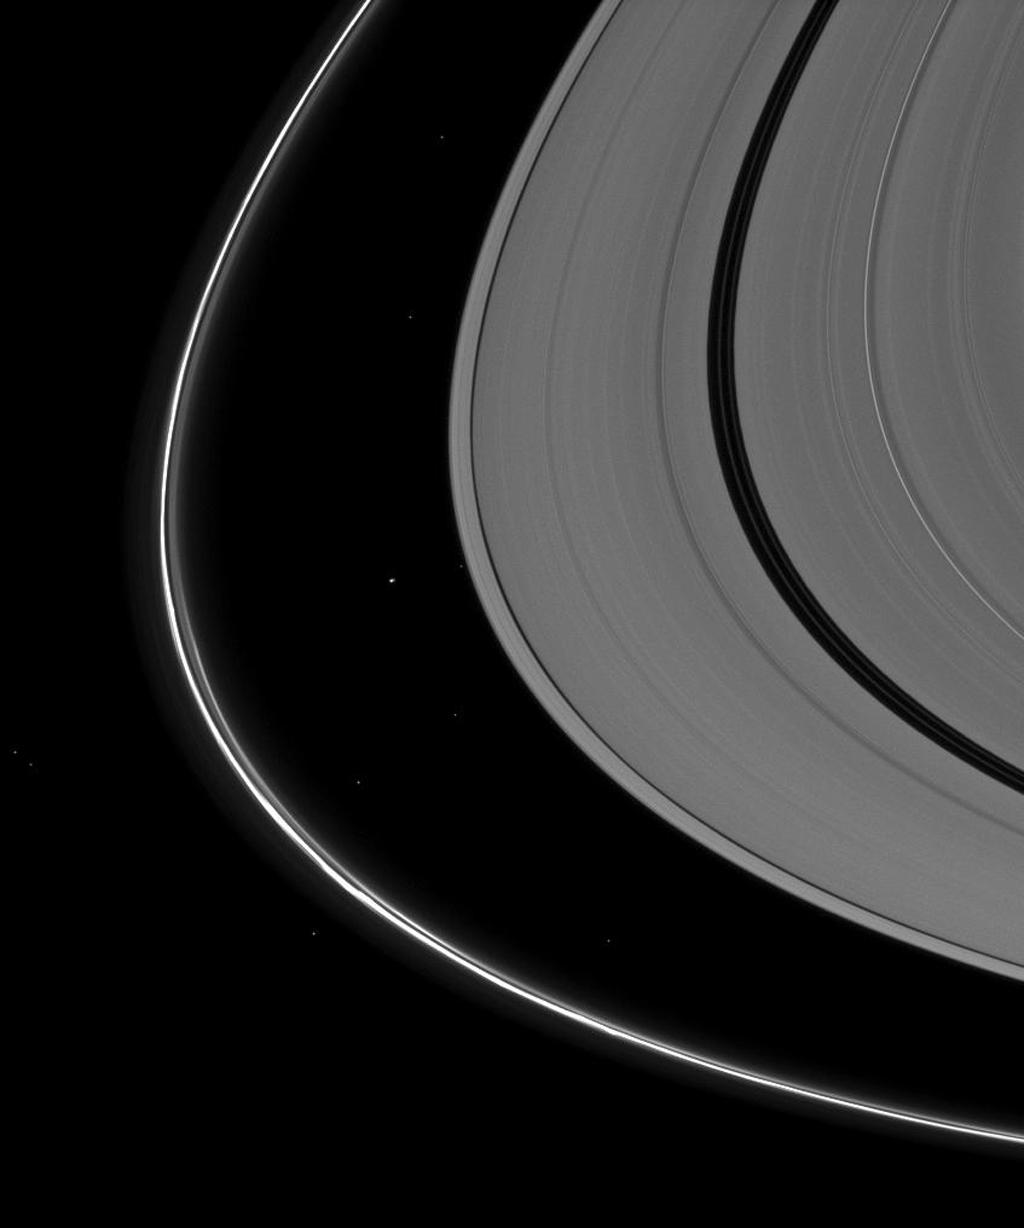 Saturn's tiny moon Atlas, just to the left of the center of the image, appears almost indistinguishable from the background stars seen in this image captured by NASA's Cassini spacecraft.